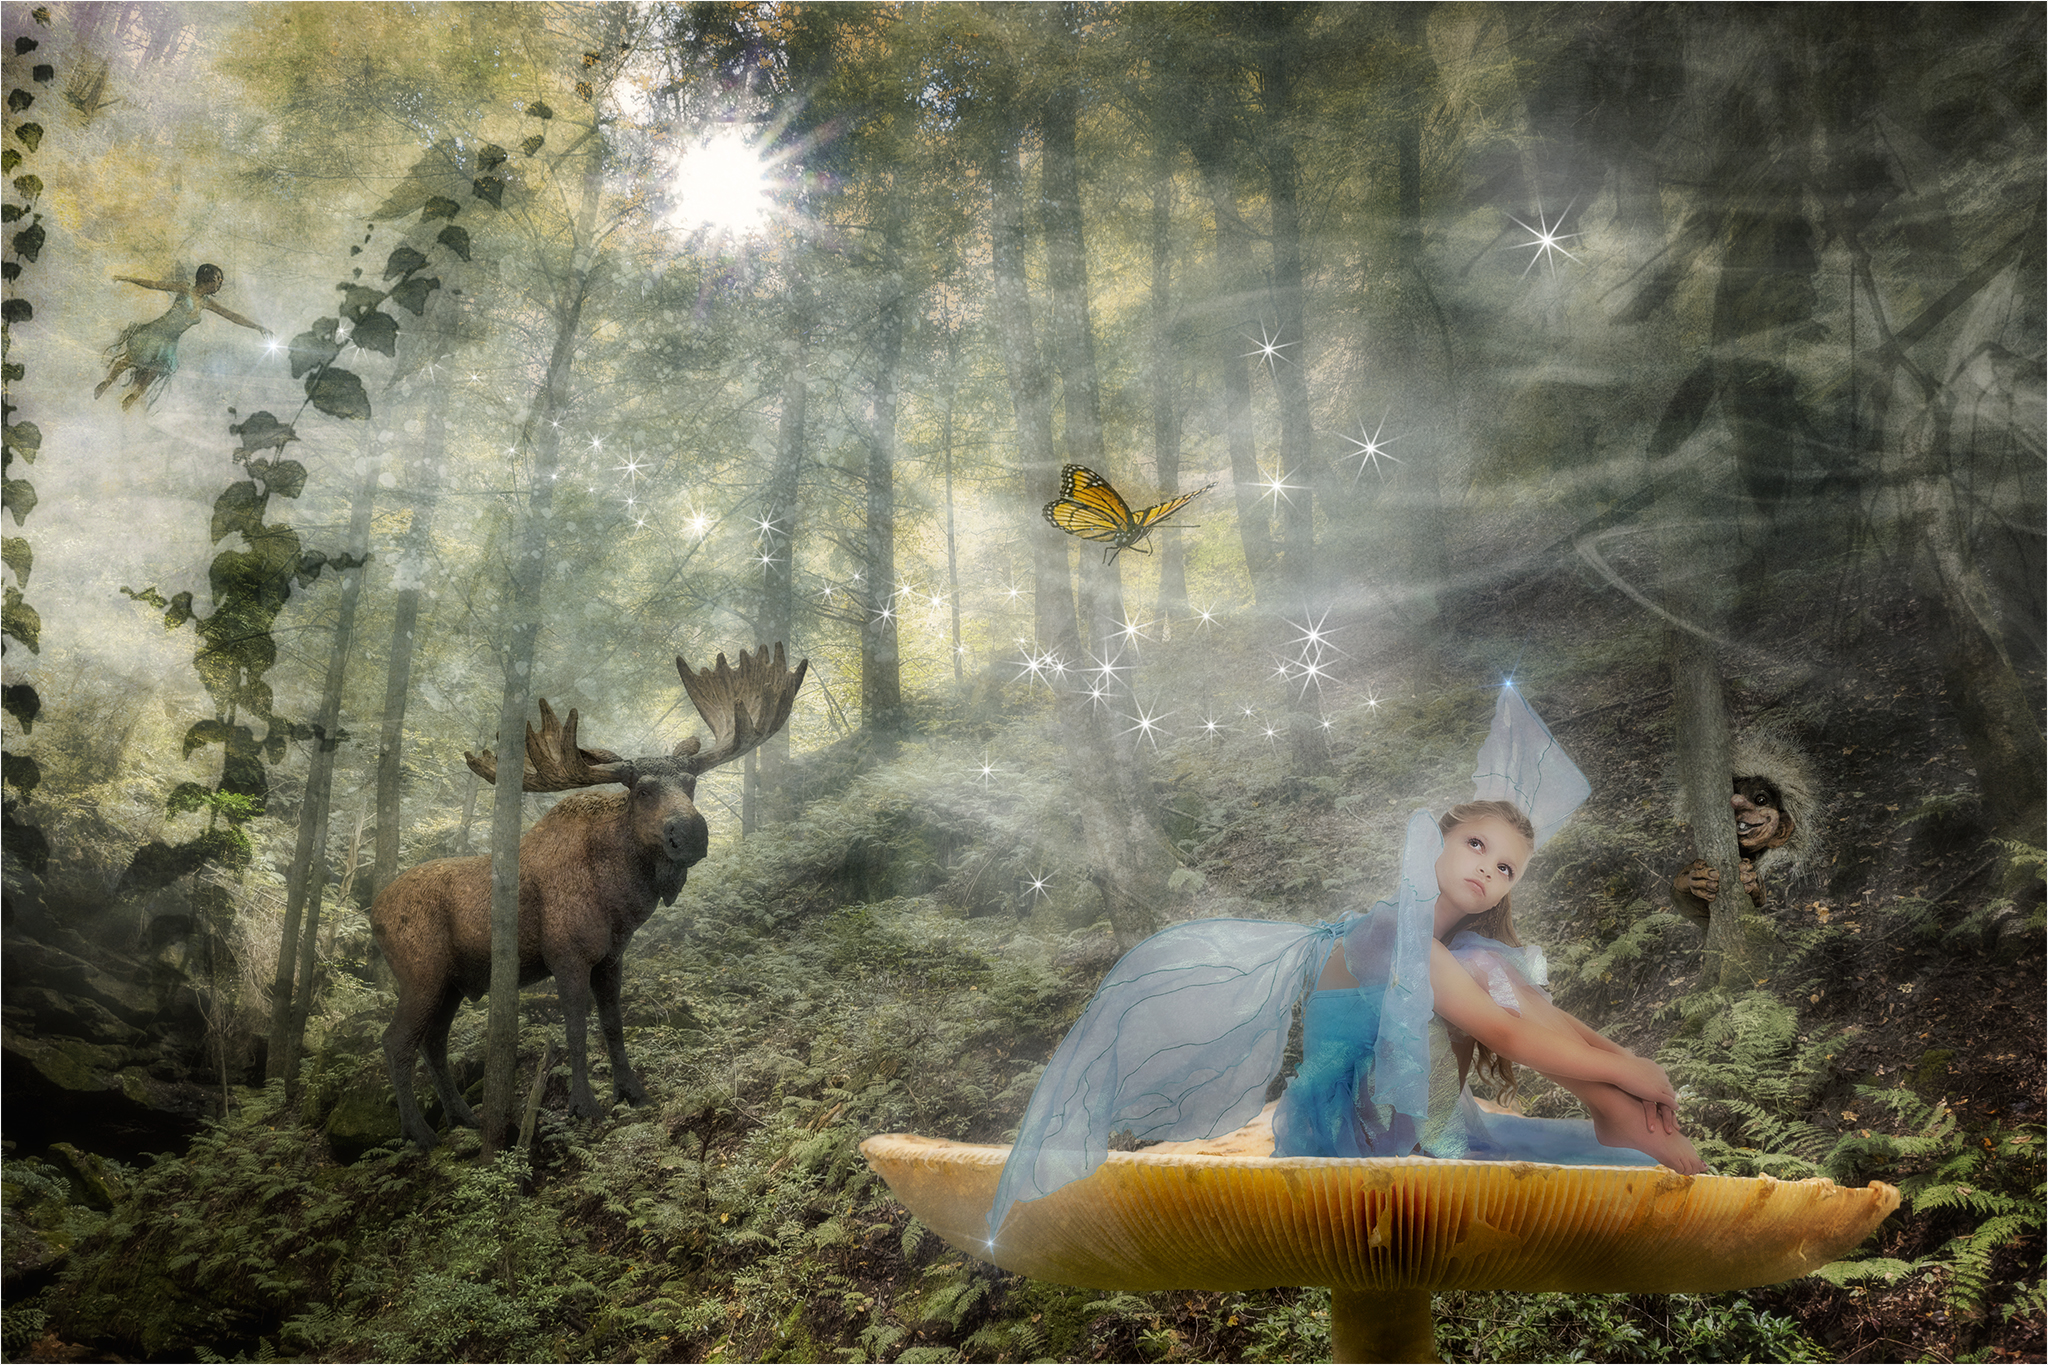 Melinda Isachsen JANIS Photography & Fine Art - Things in the Forest